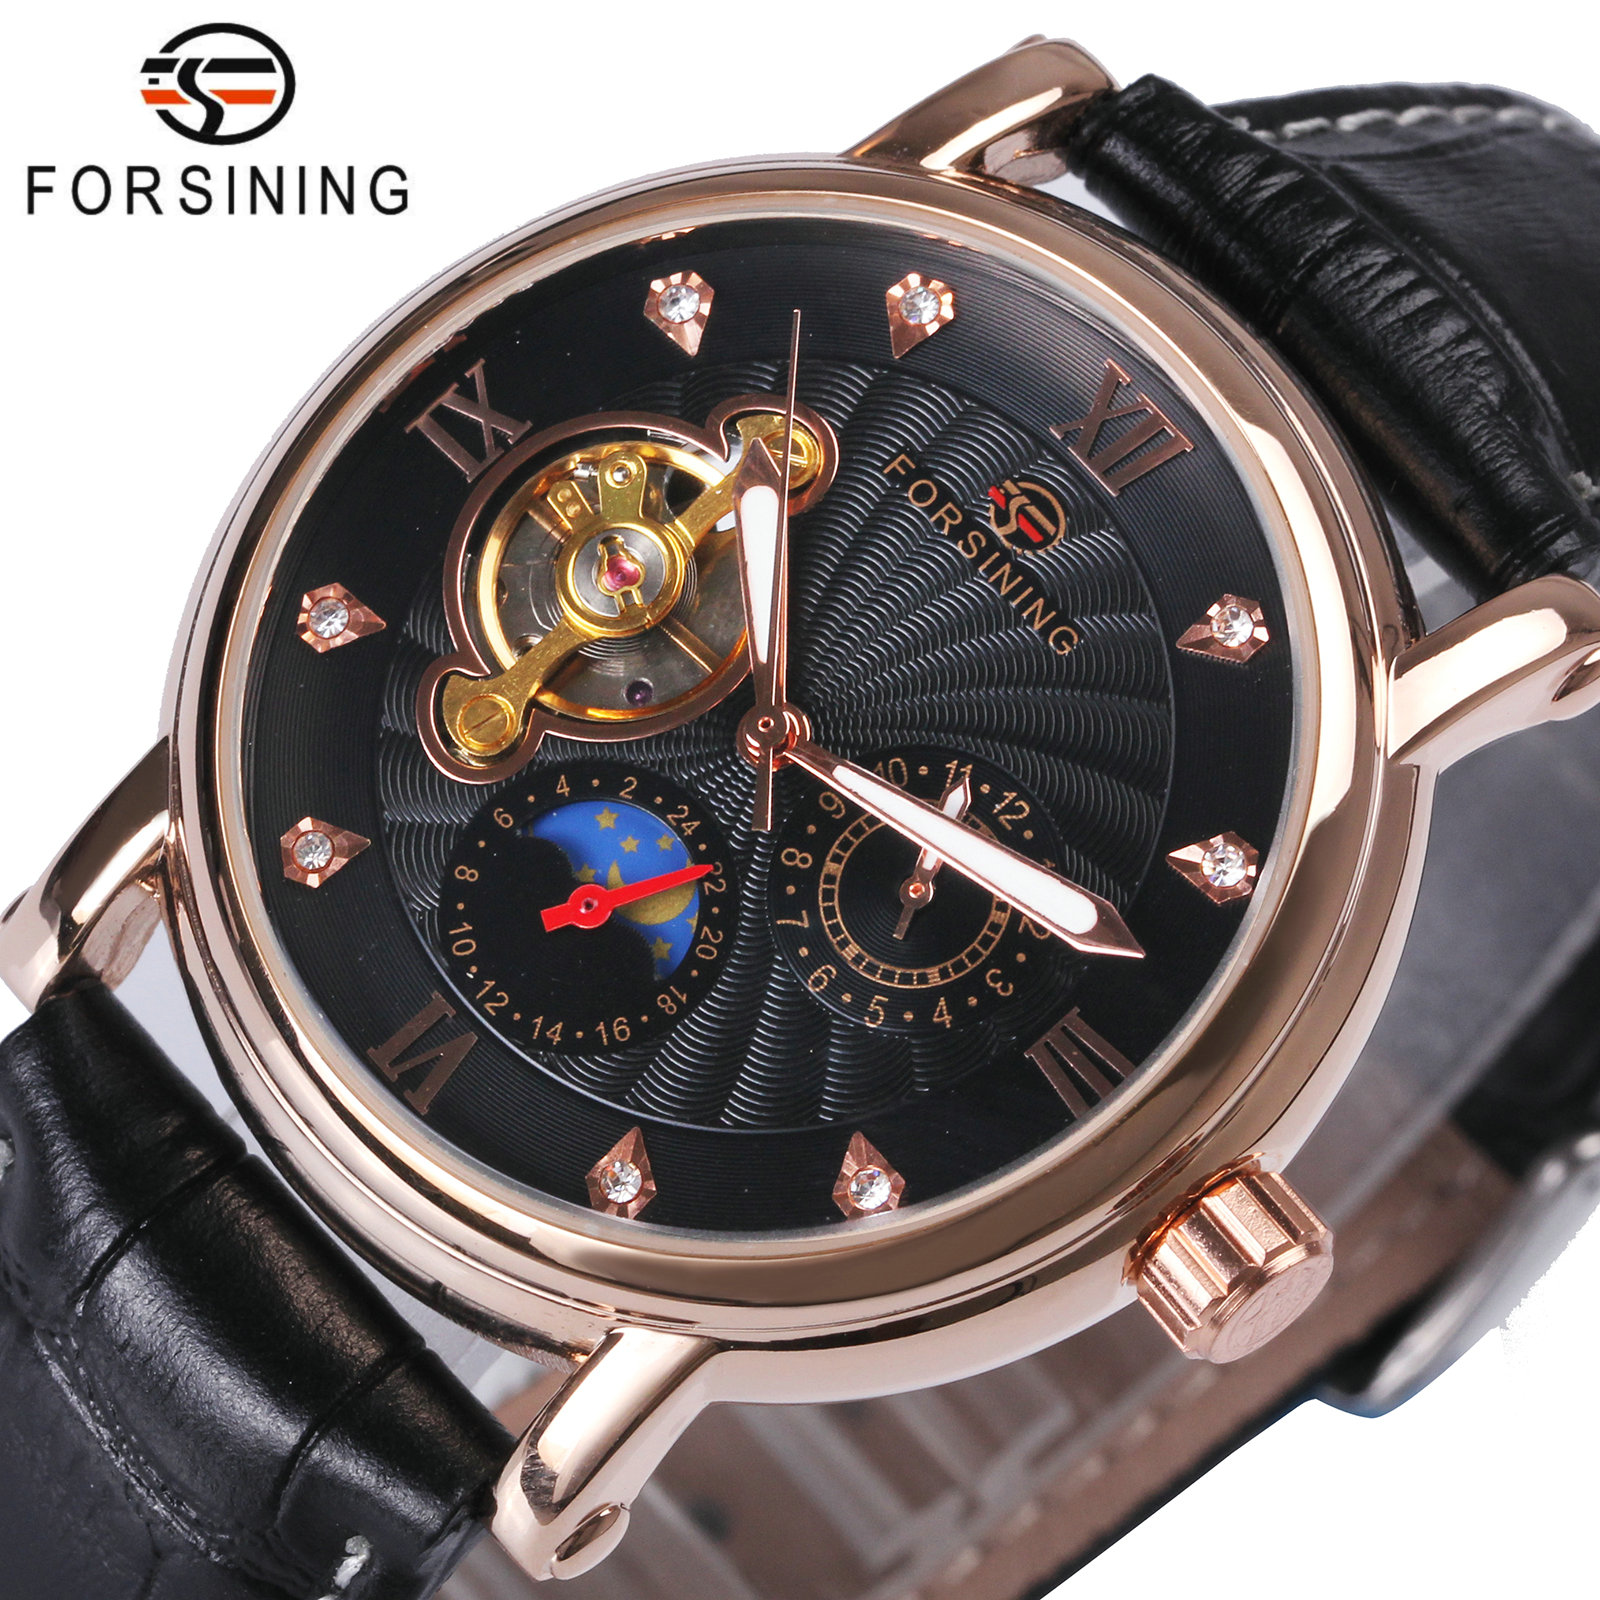 FORSINING Rose Golden Tourbillon Mechanical Mens Watches Top Brand Luxury Sun Moon Display Crystal Skeleton Dial Watch Men forsining fashion tourbillon watch men genuine leather strap skeleton tooeau dial date mechanical mens watches top brand luxury